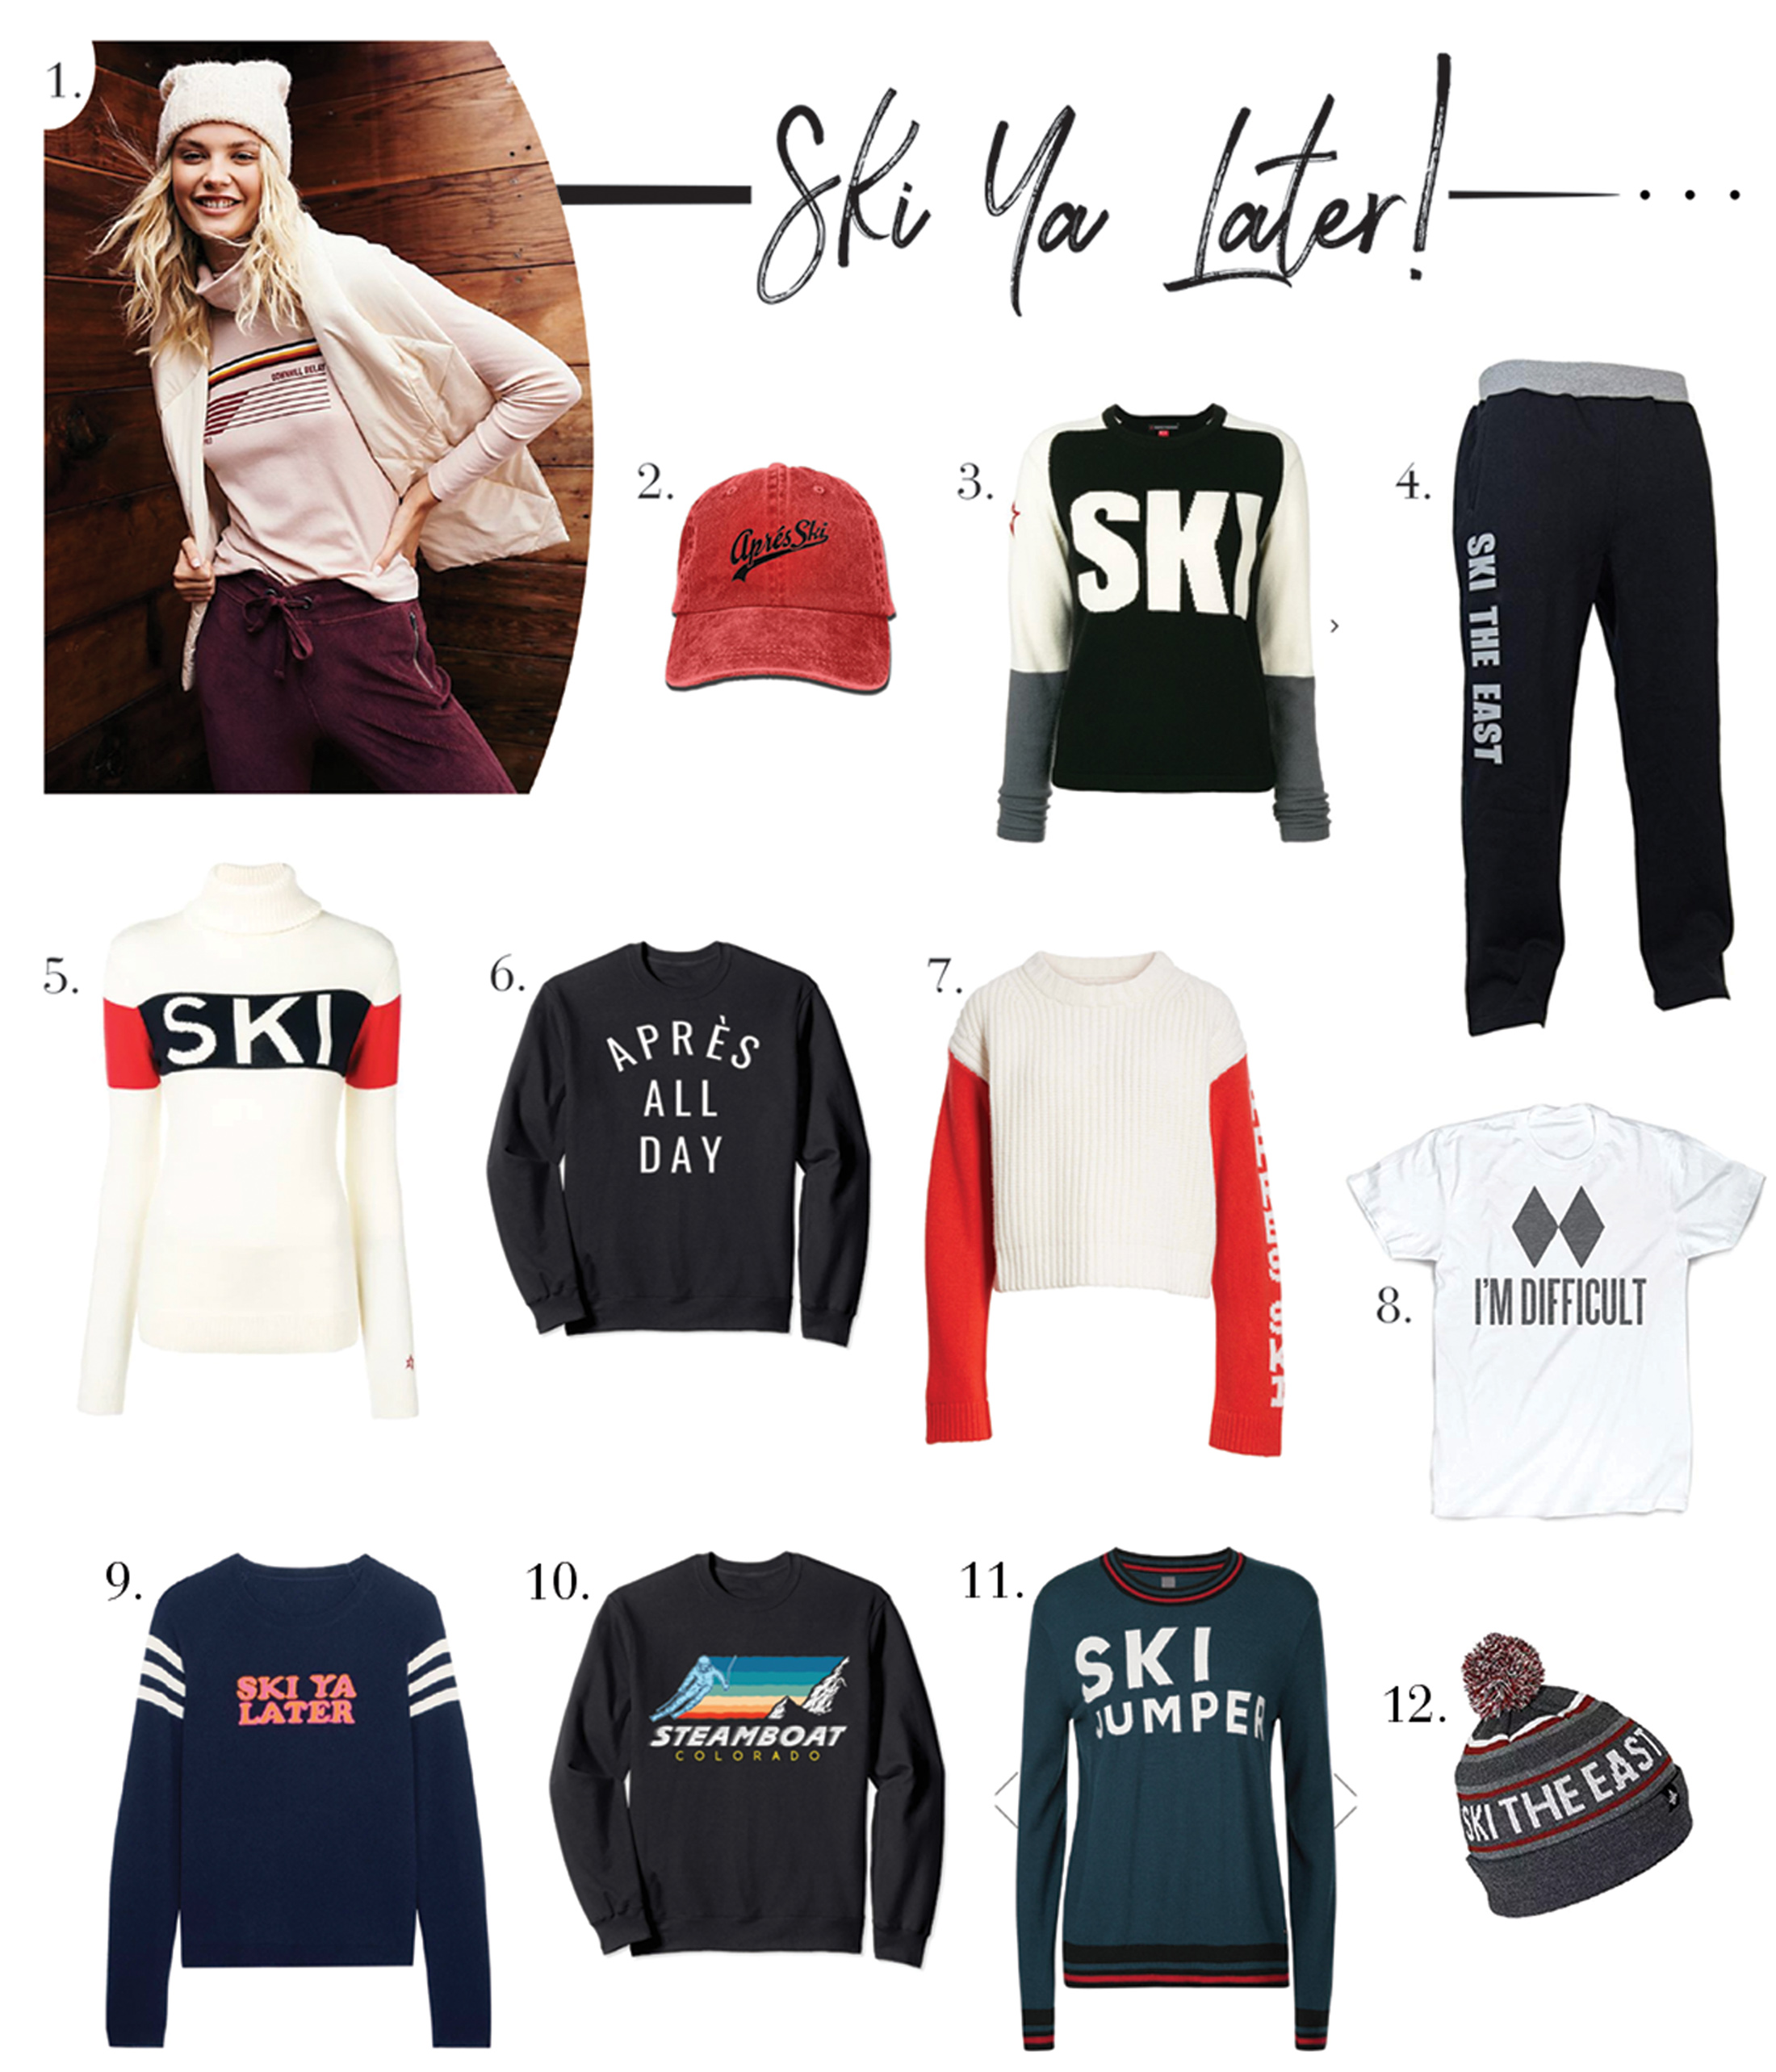 Ski season calls for some cute, cozy ski-themed gear for this snow bunny. You too? We've rounded up our fav beanies, sweaters & sweats to face the cold.